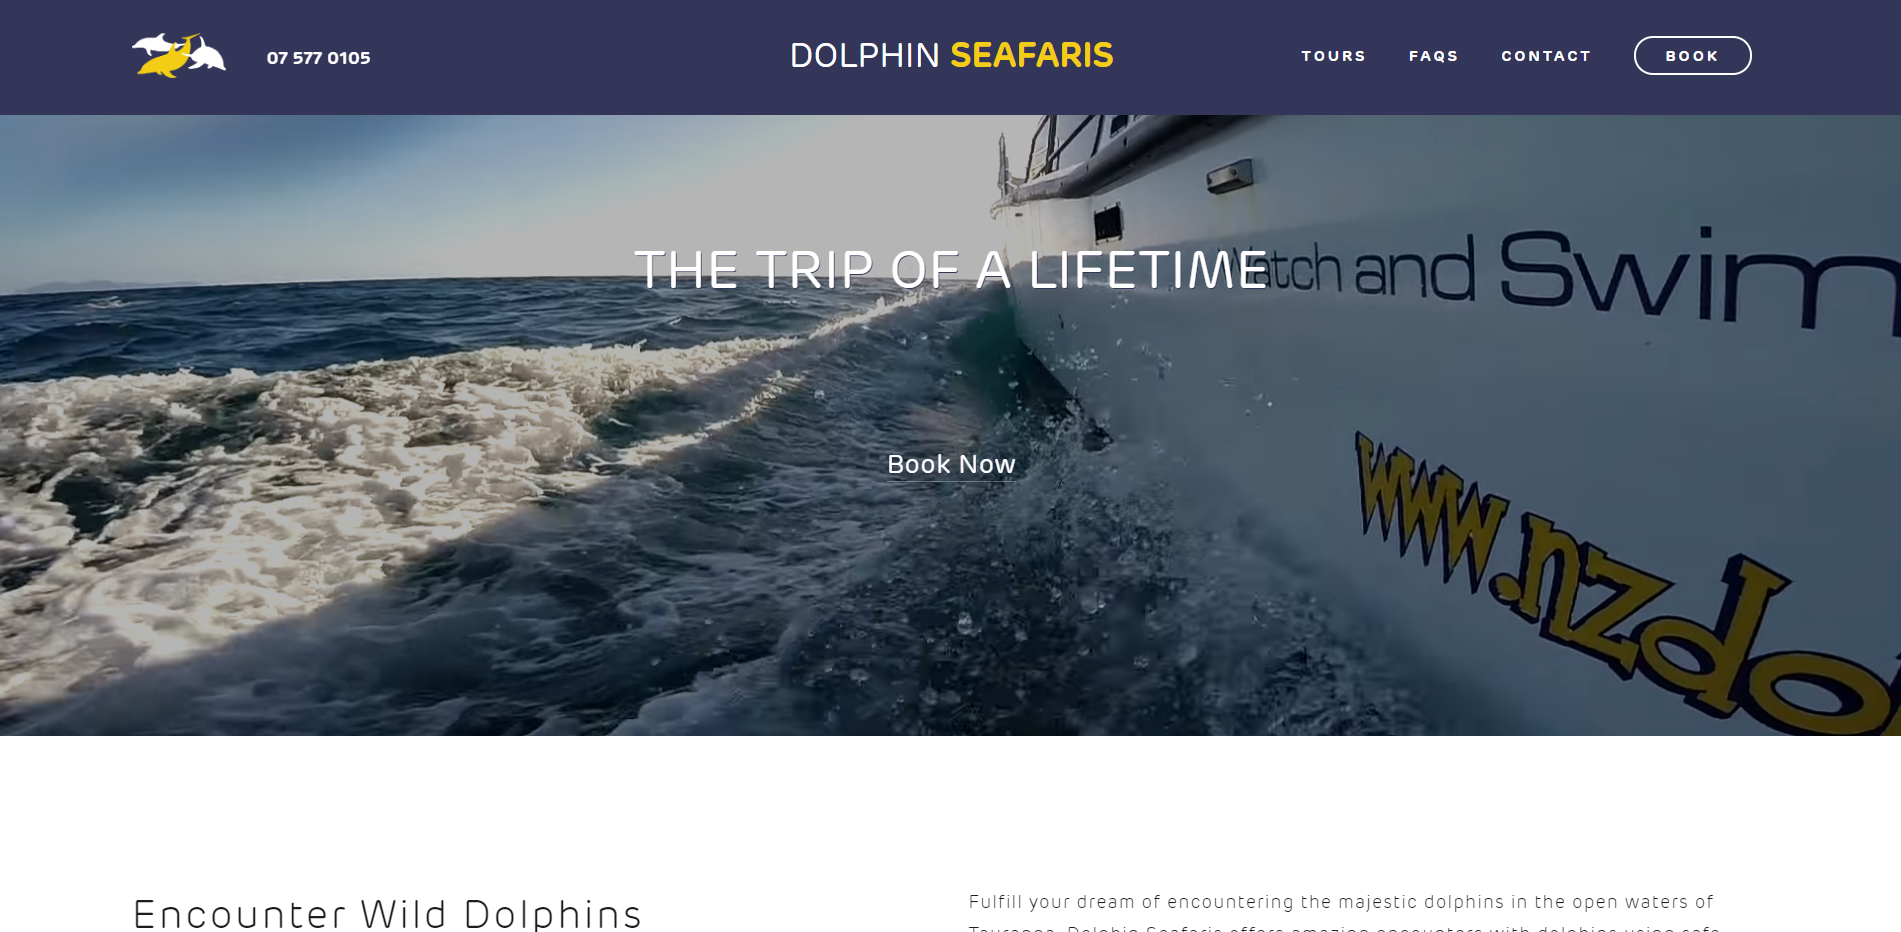 Dolphin Seafaris - Dolphin tour operator Dolphin Seafaris came to us with a site redesign in mind and we quickly came up with a beautiful simplistic new site design.